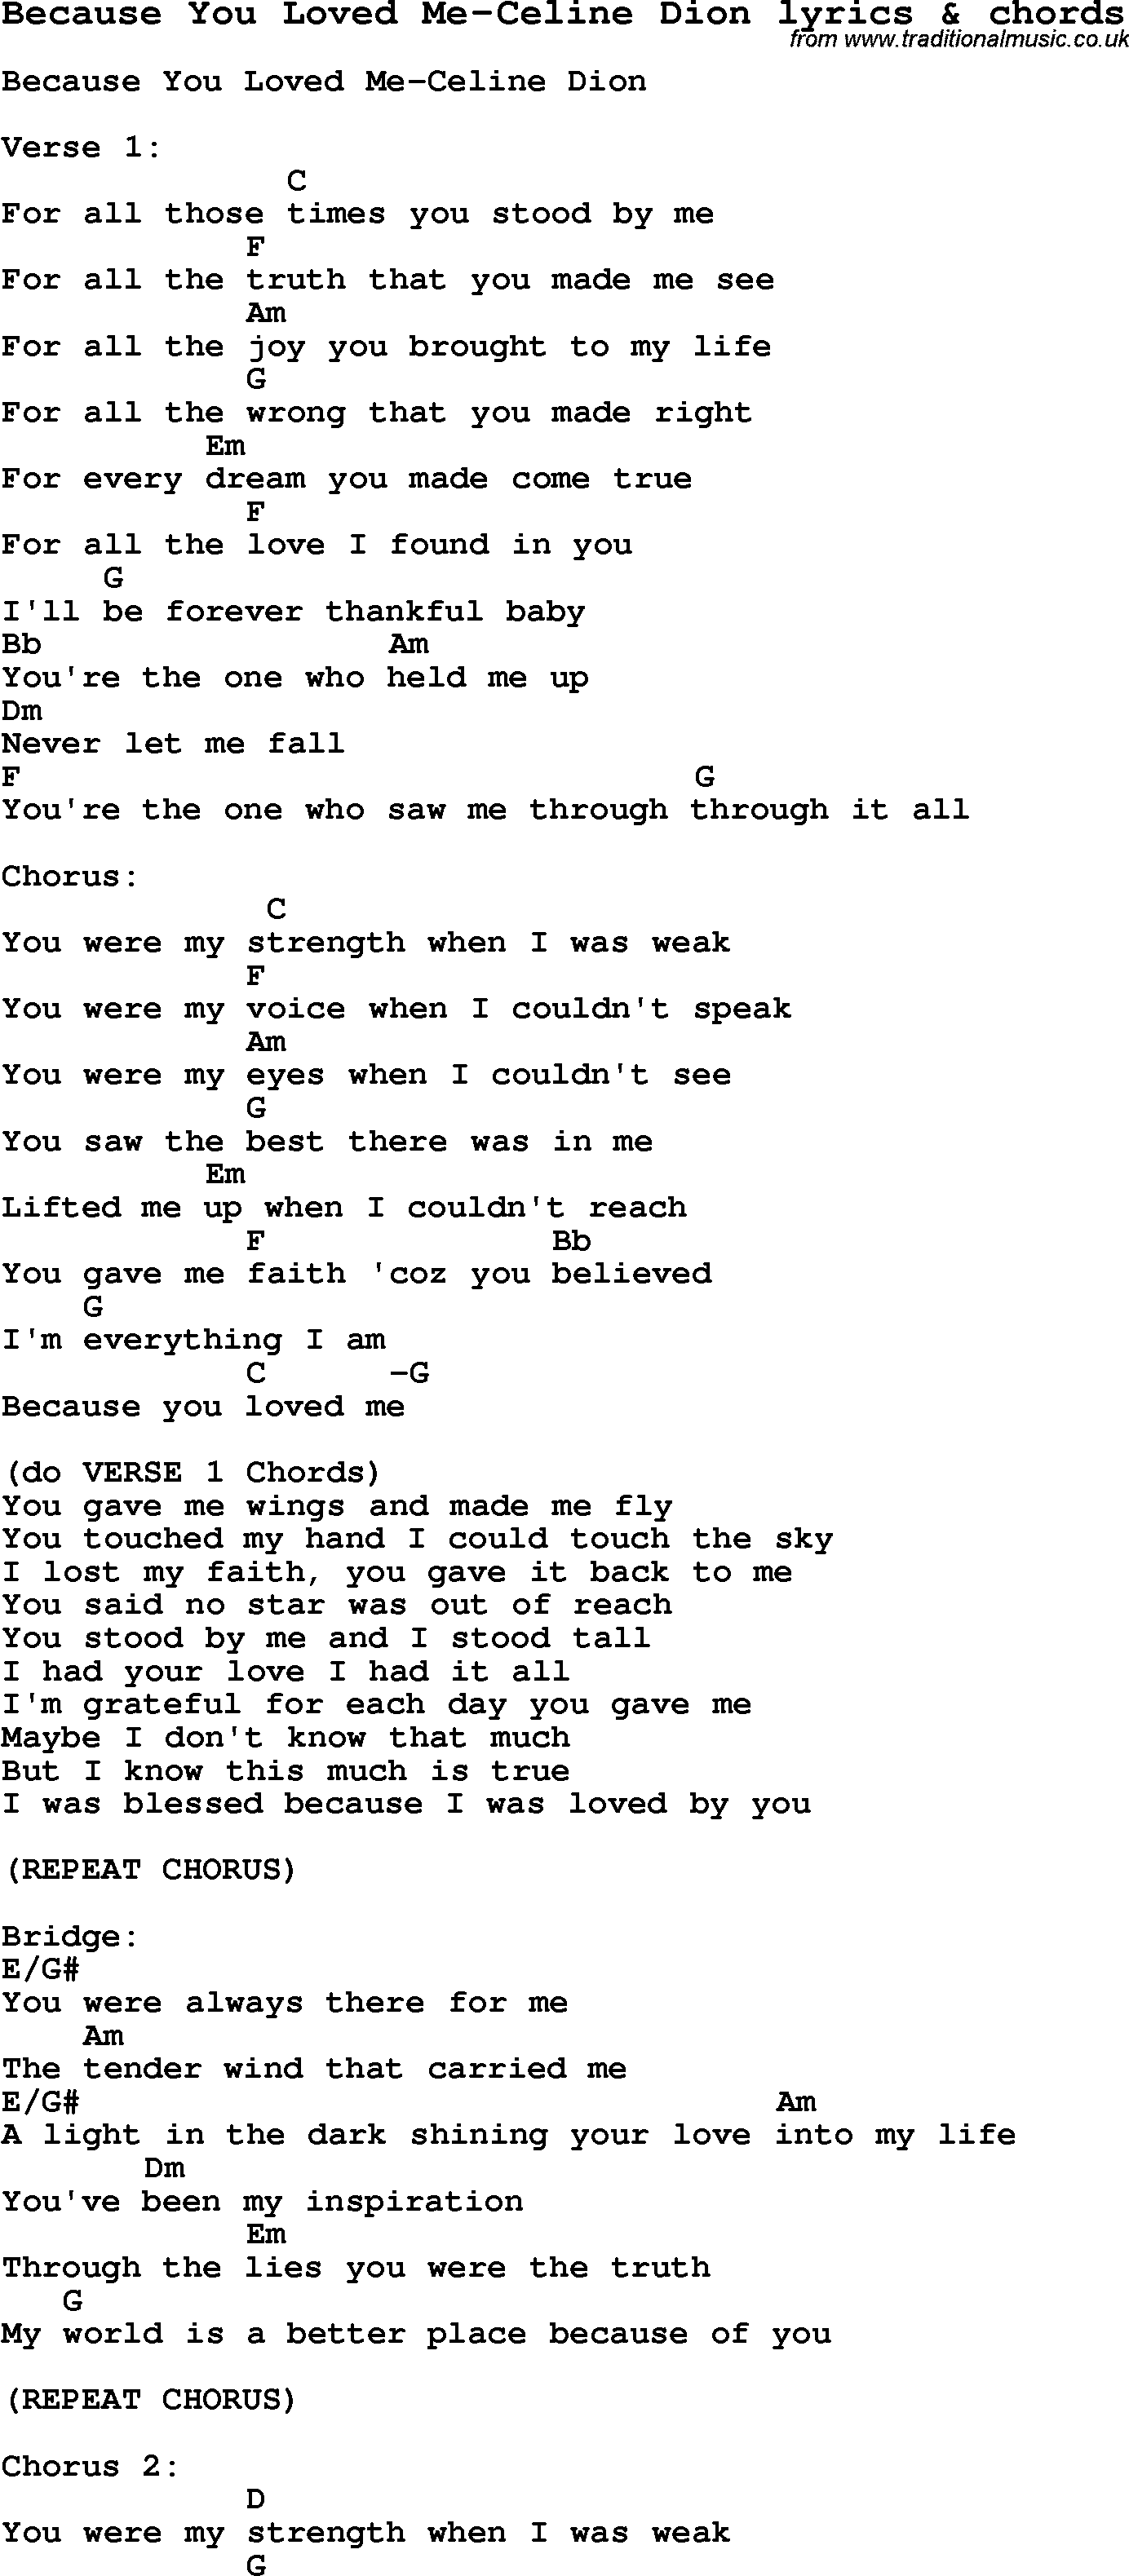 Love Song Lyrics for:Because You Loved Me-Celine Dion with